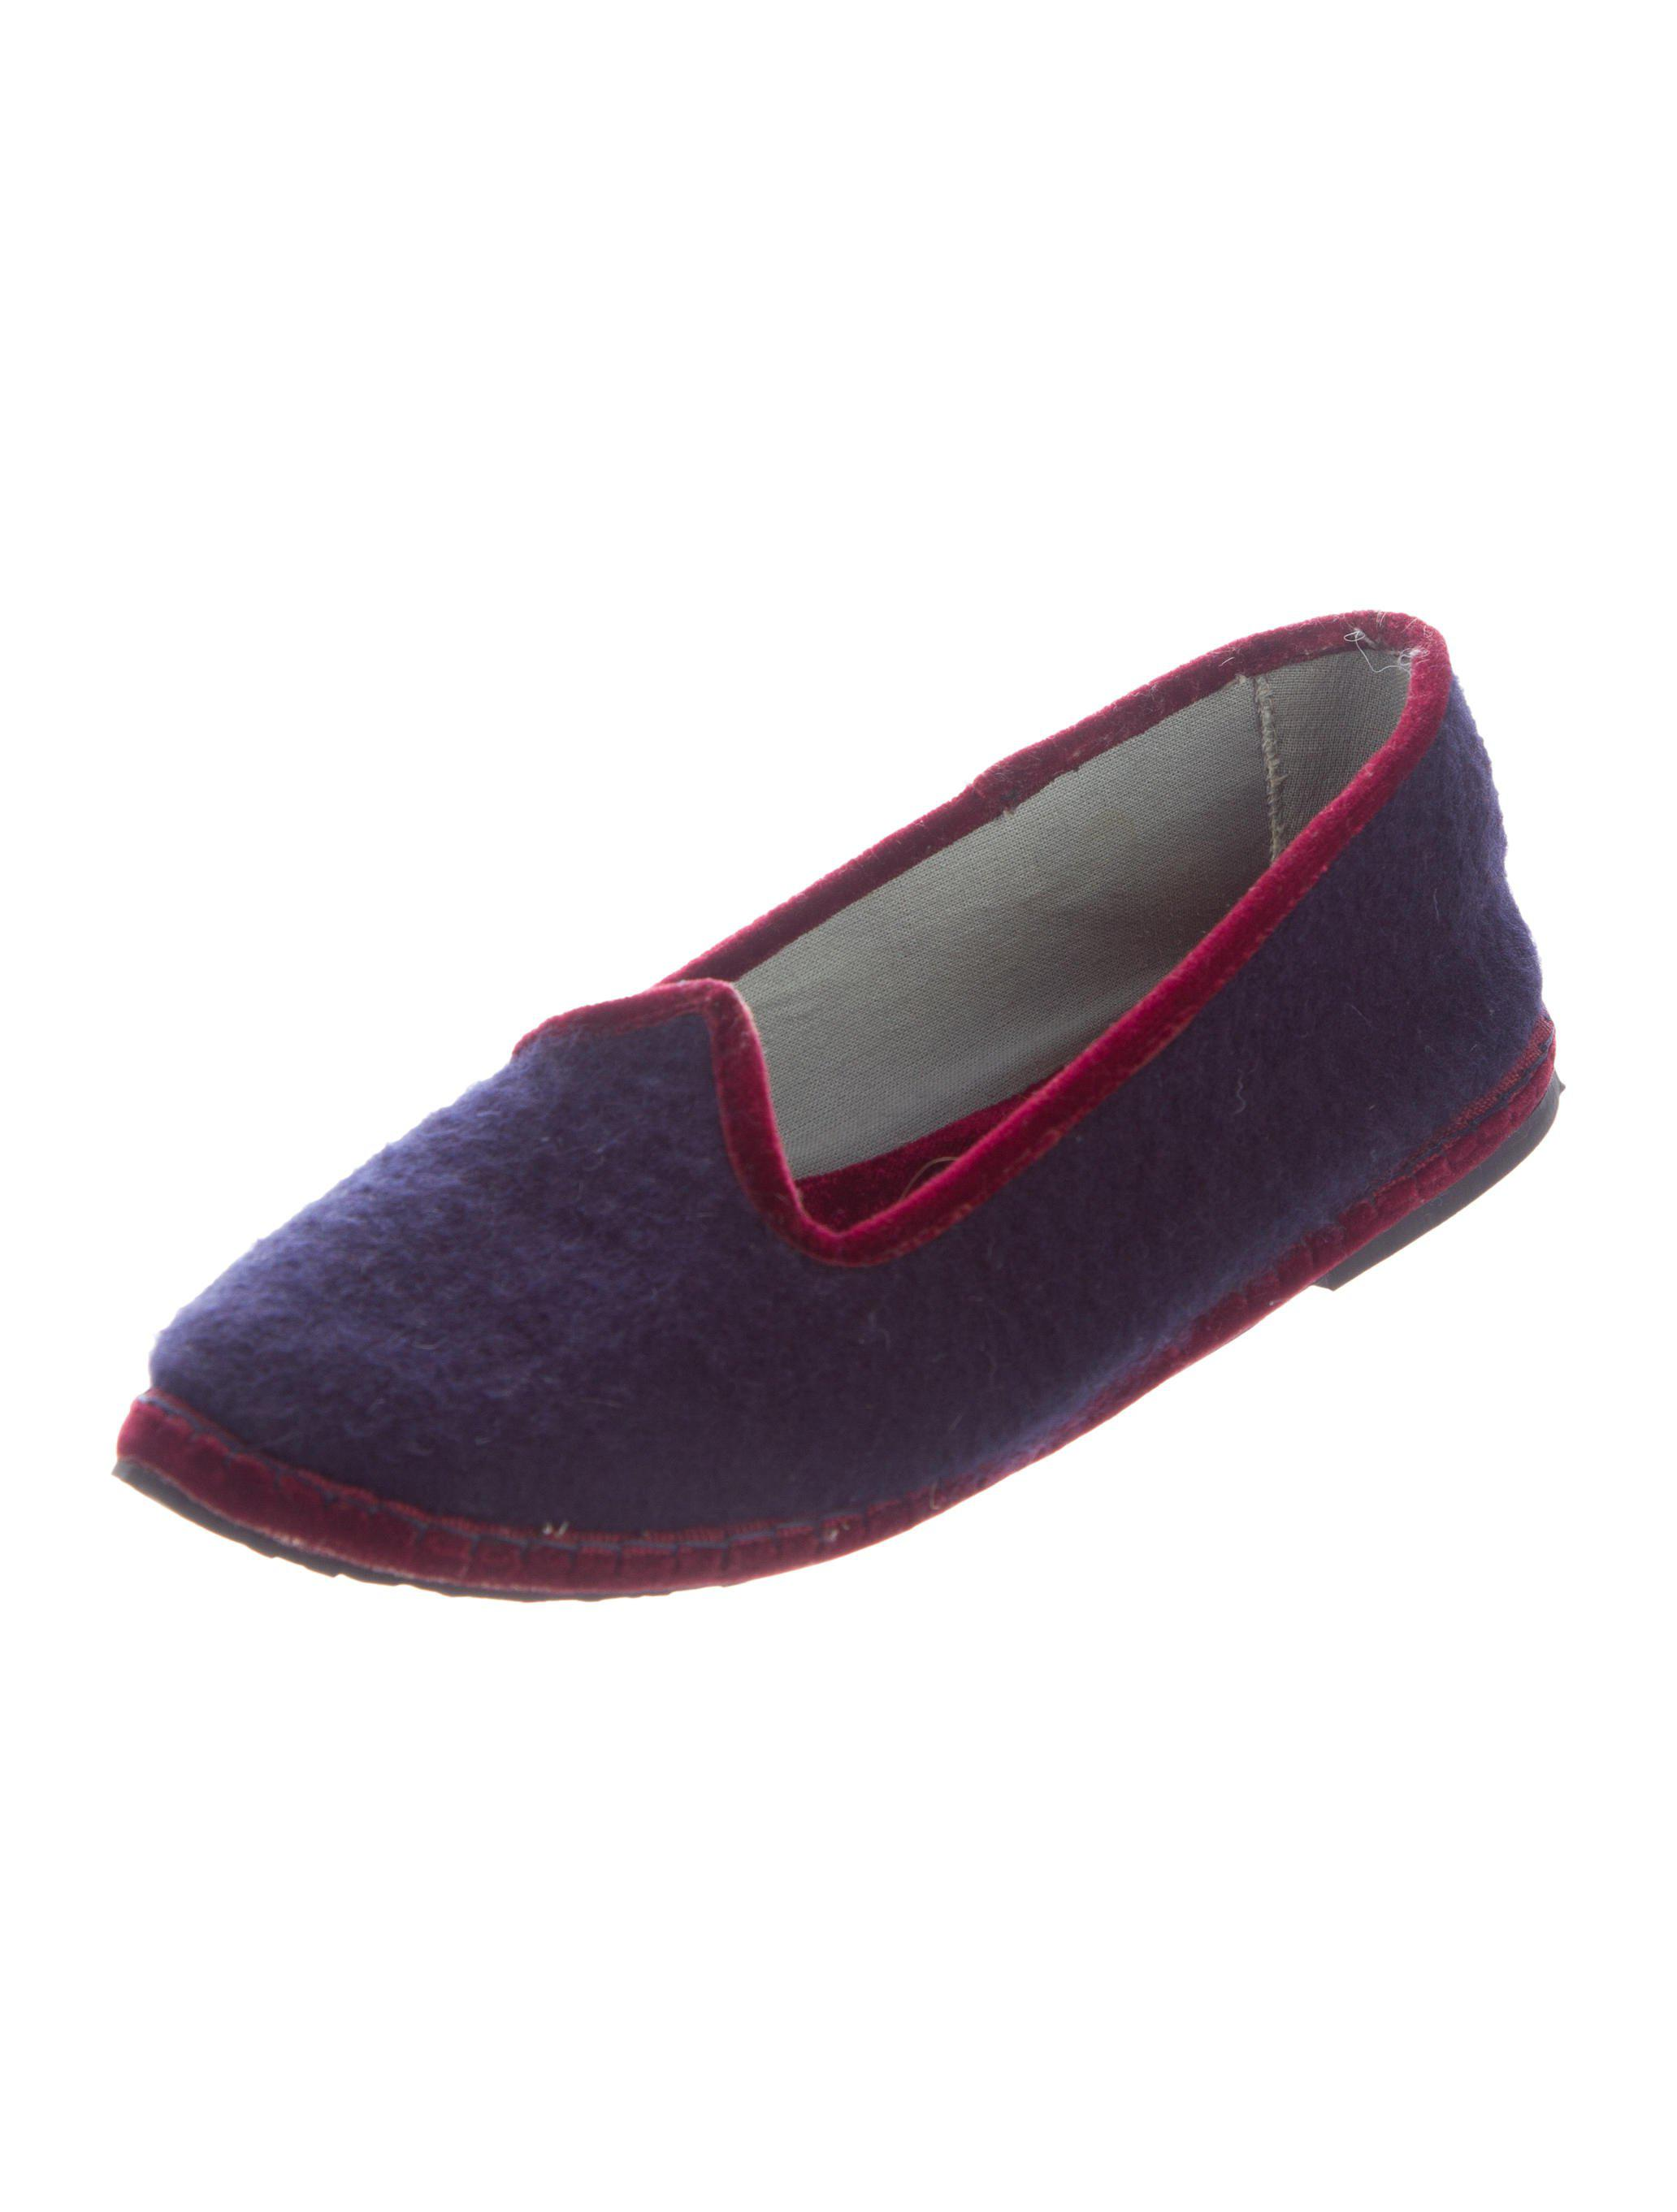 Loro Piana Cashmere Pointed-Toe Loafers sale amazing price buy cheap reliable free shipping cheap cheap looking for t38qwTX0